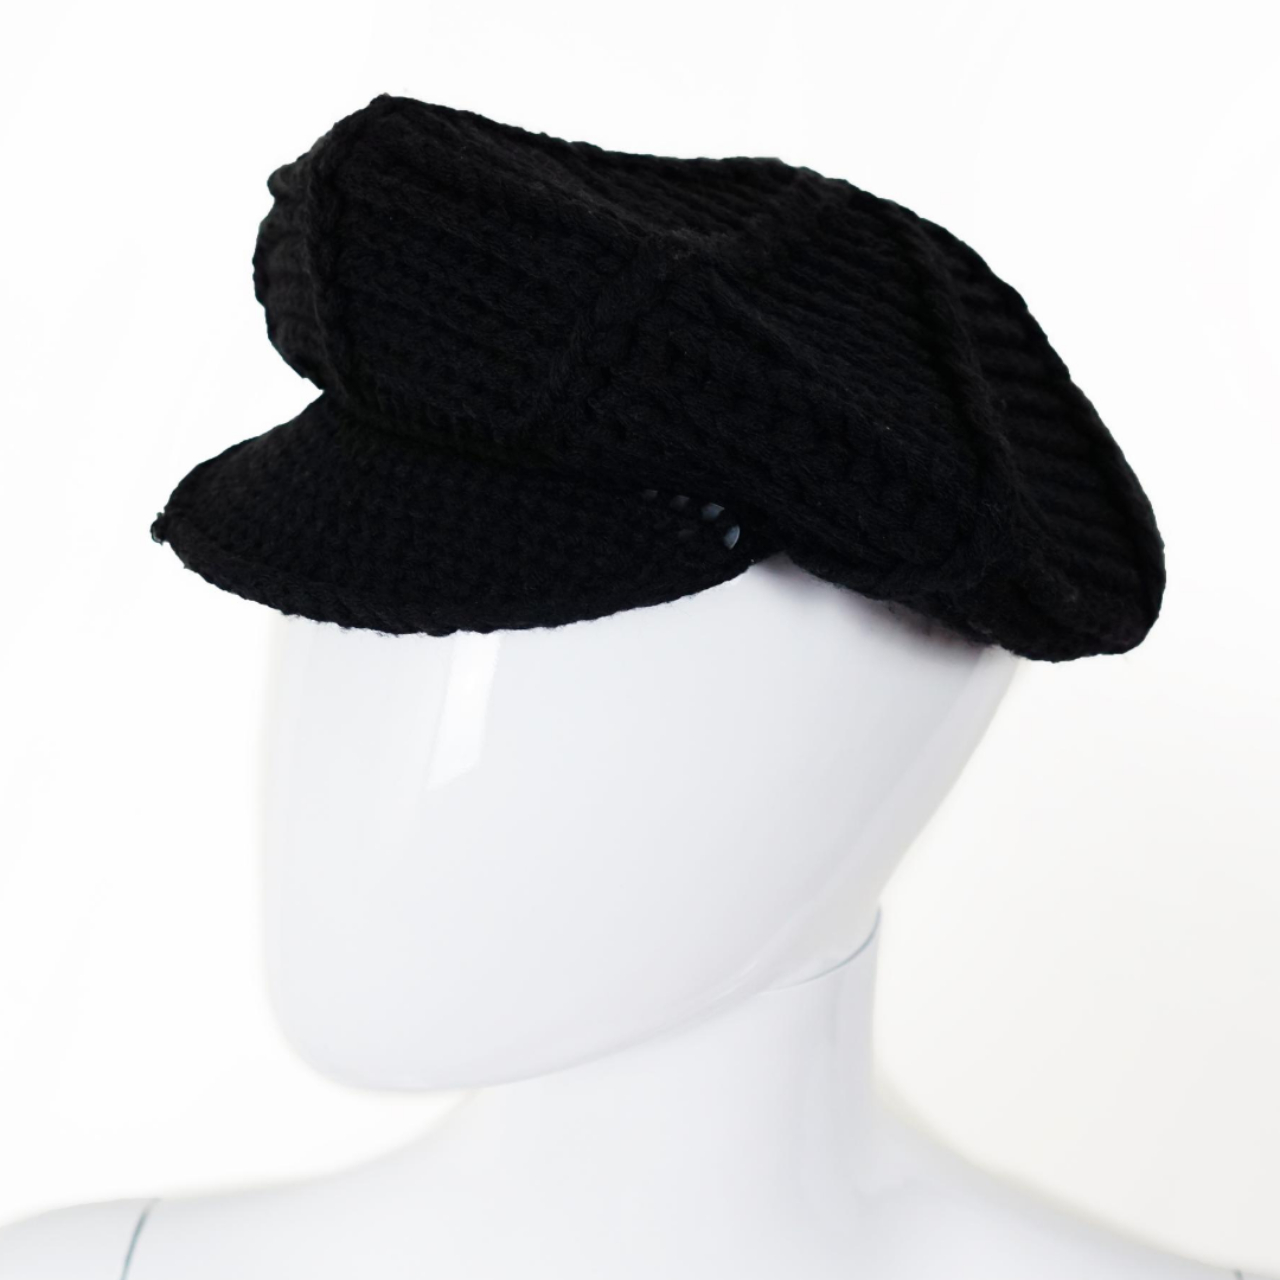 Product Image 1 - ACCESSORIES Black Knitted Peaked Cap